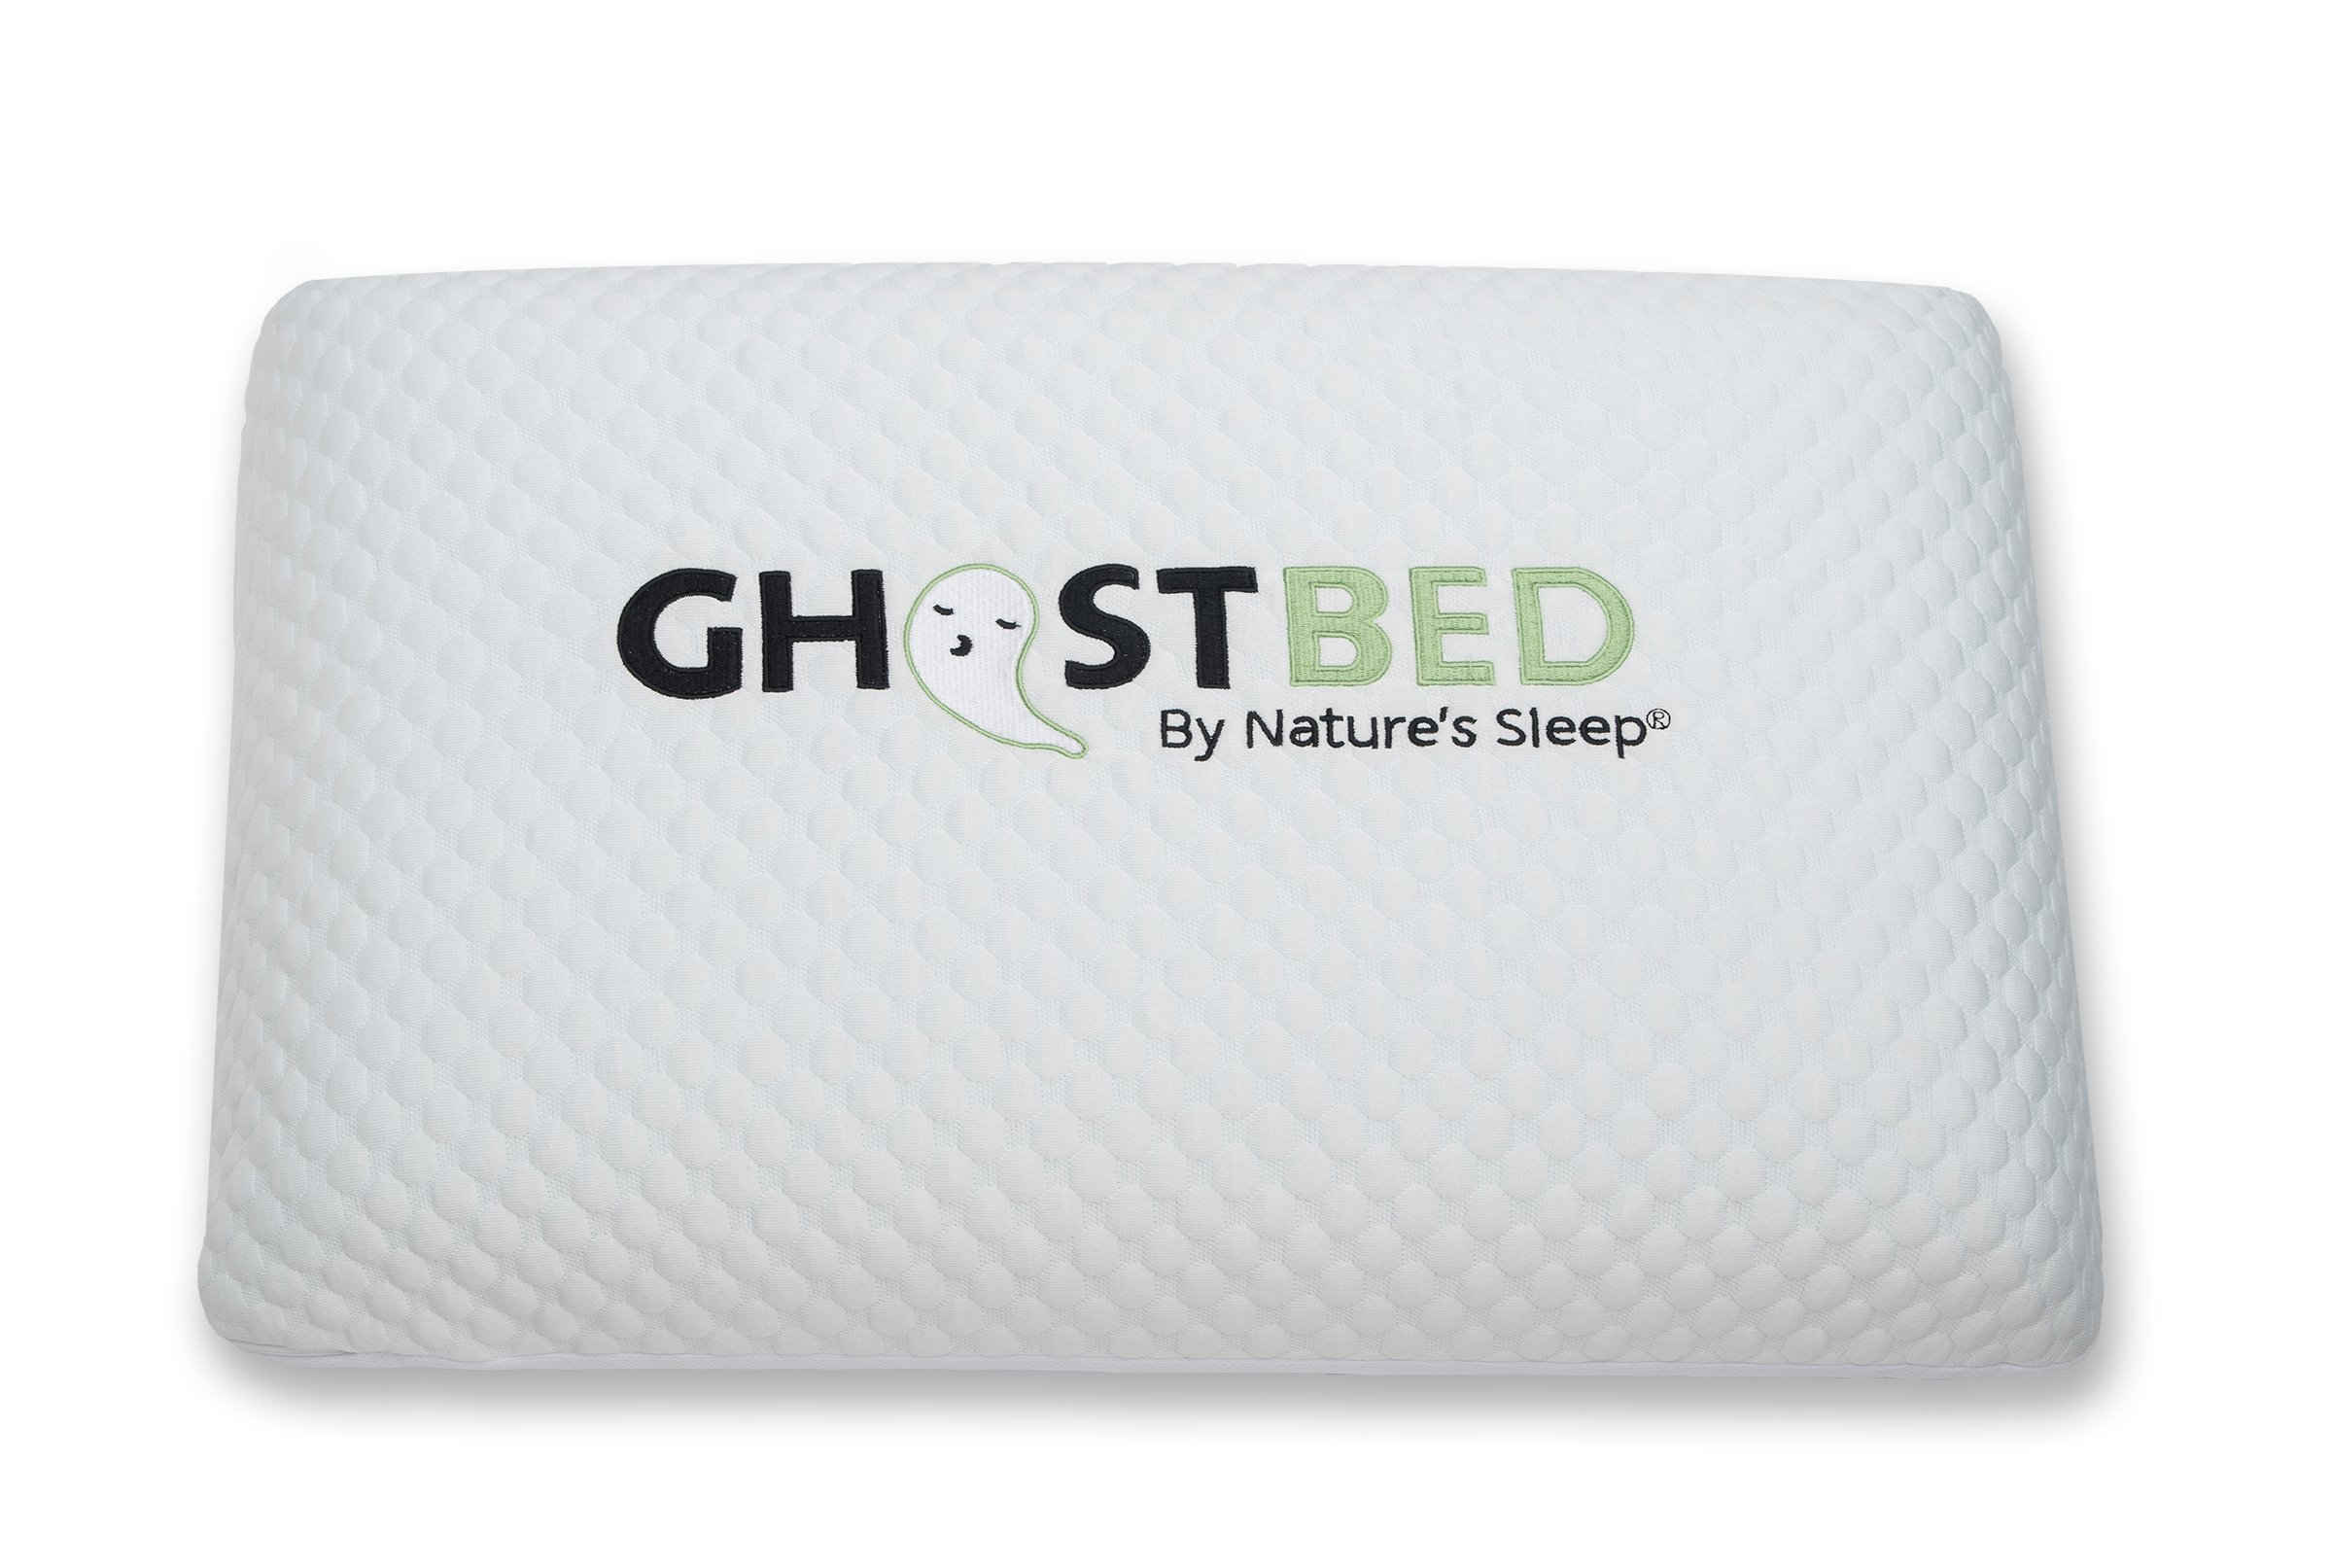 Ghostbed 11GBPW010 Luxury Memory Foam Ghost Pillow (1 Pack), Standard